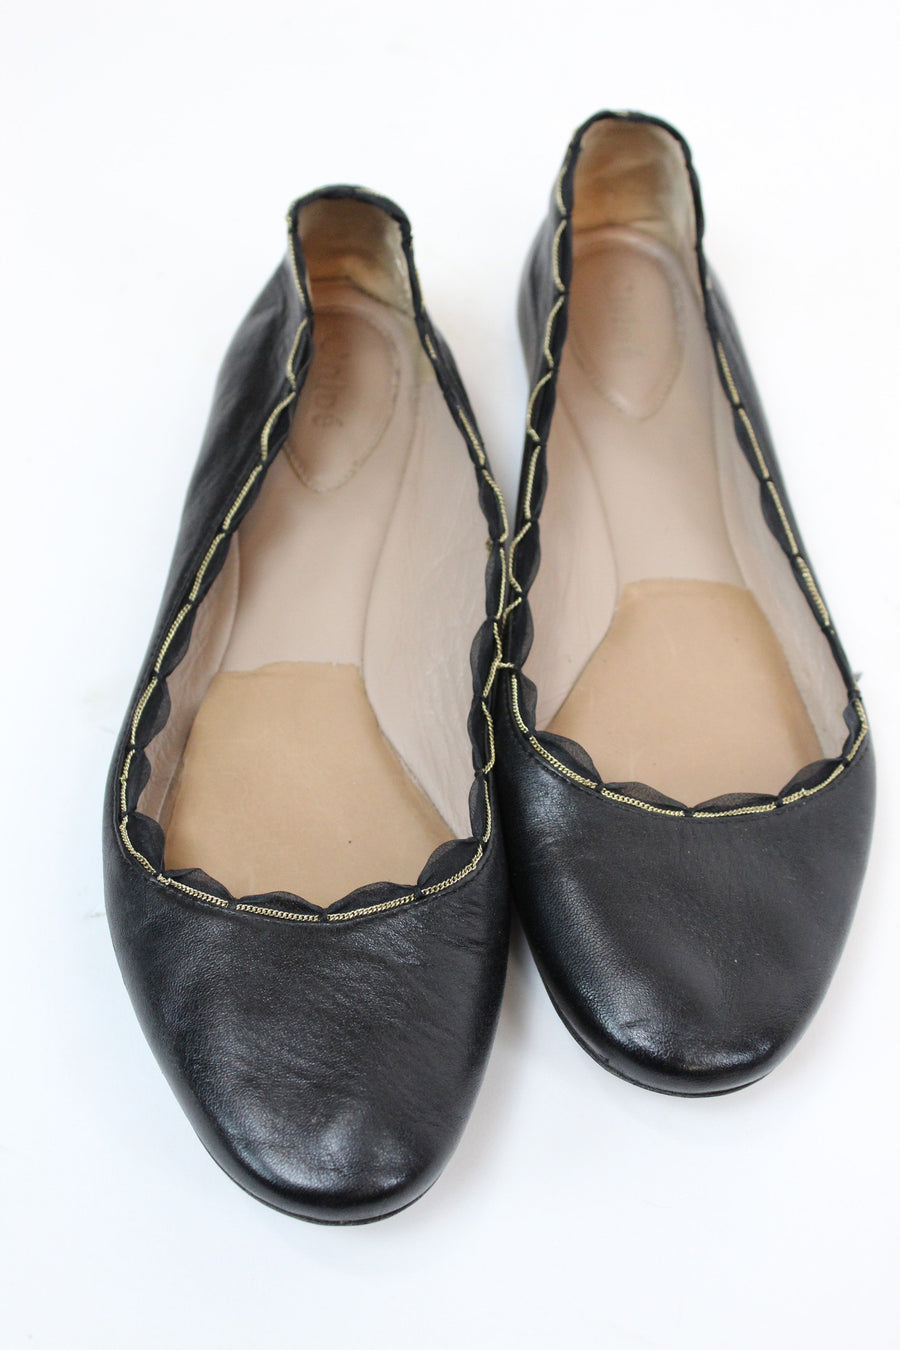 vintage Chloe butter leather and chain flats 39.5 EU | 8 US